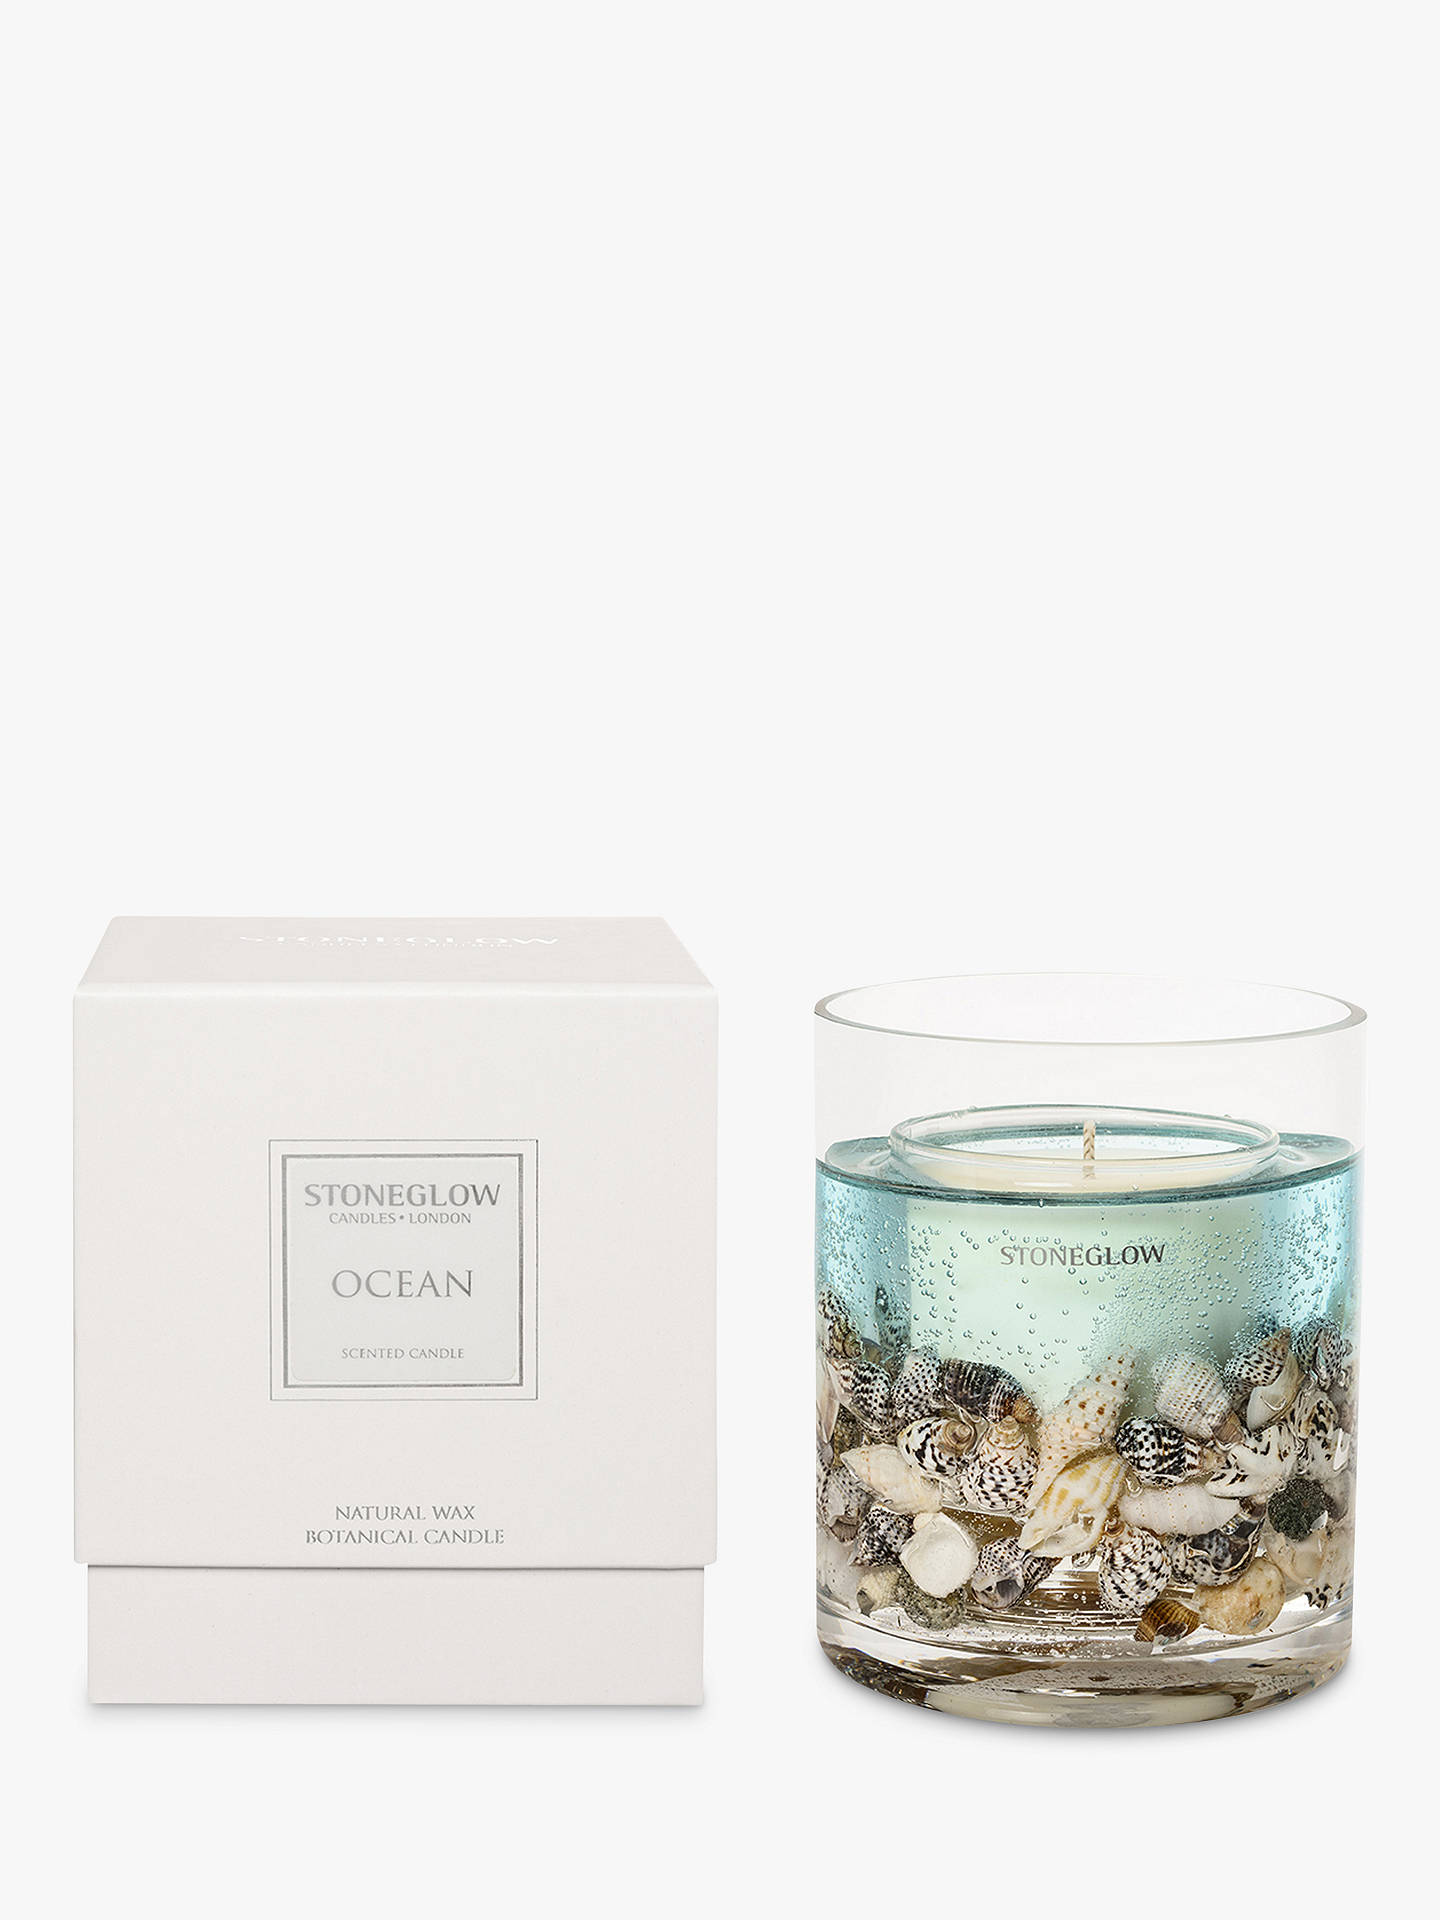 Stoneglow Nature's Gift Ocean Scented Gel Candle